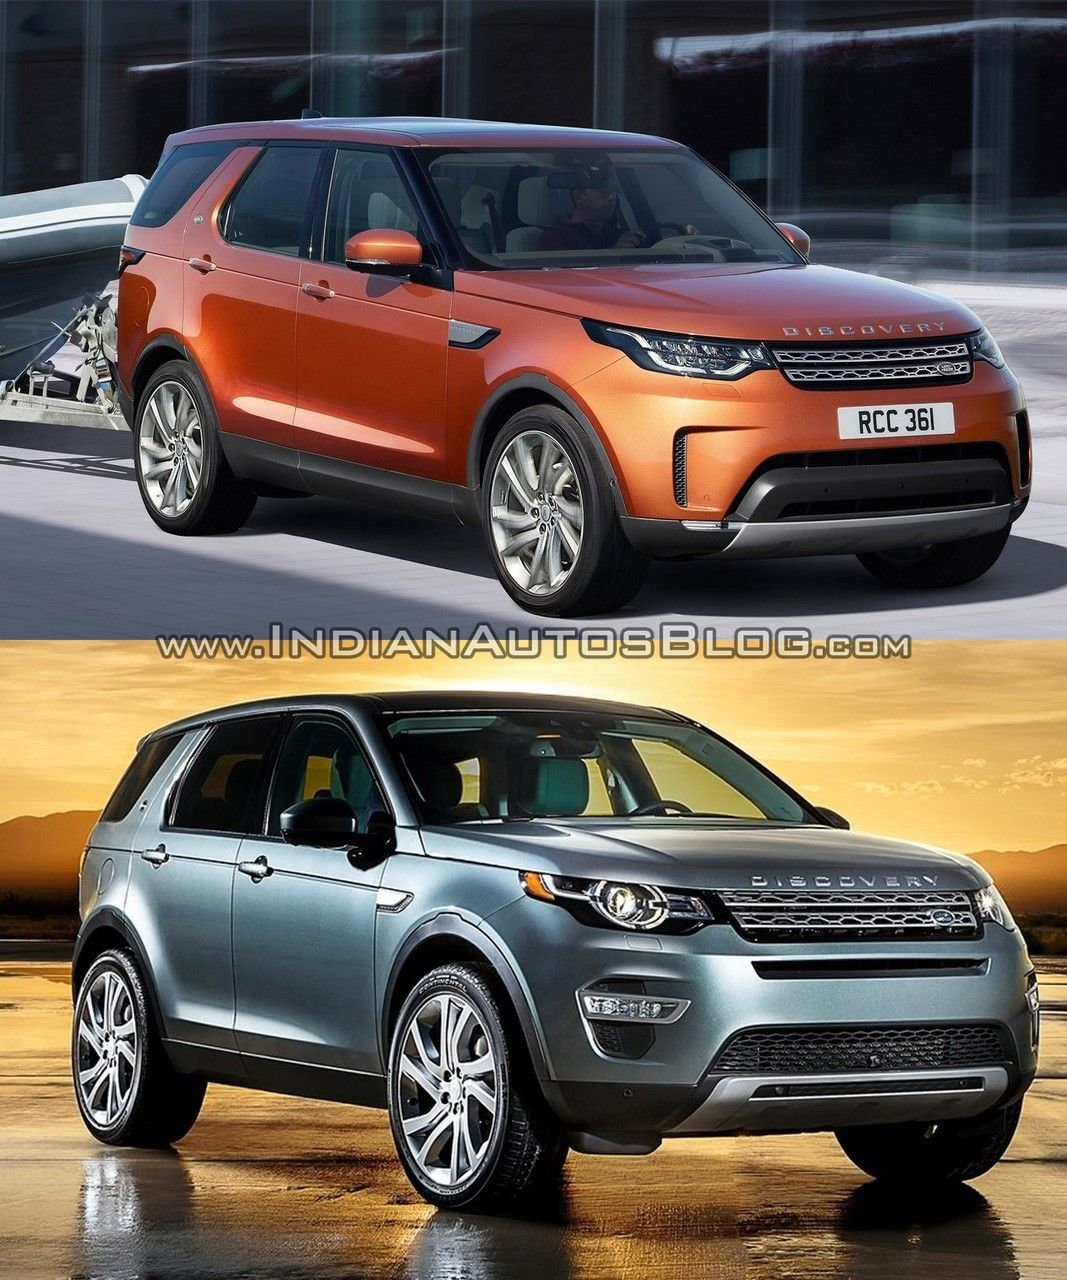 2017 Land Rover Discovery Vs Discovery Sport In Images Land